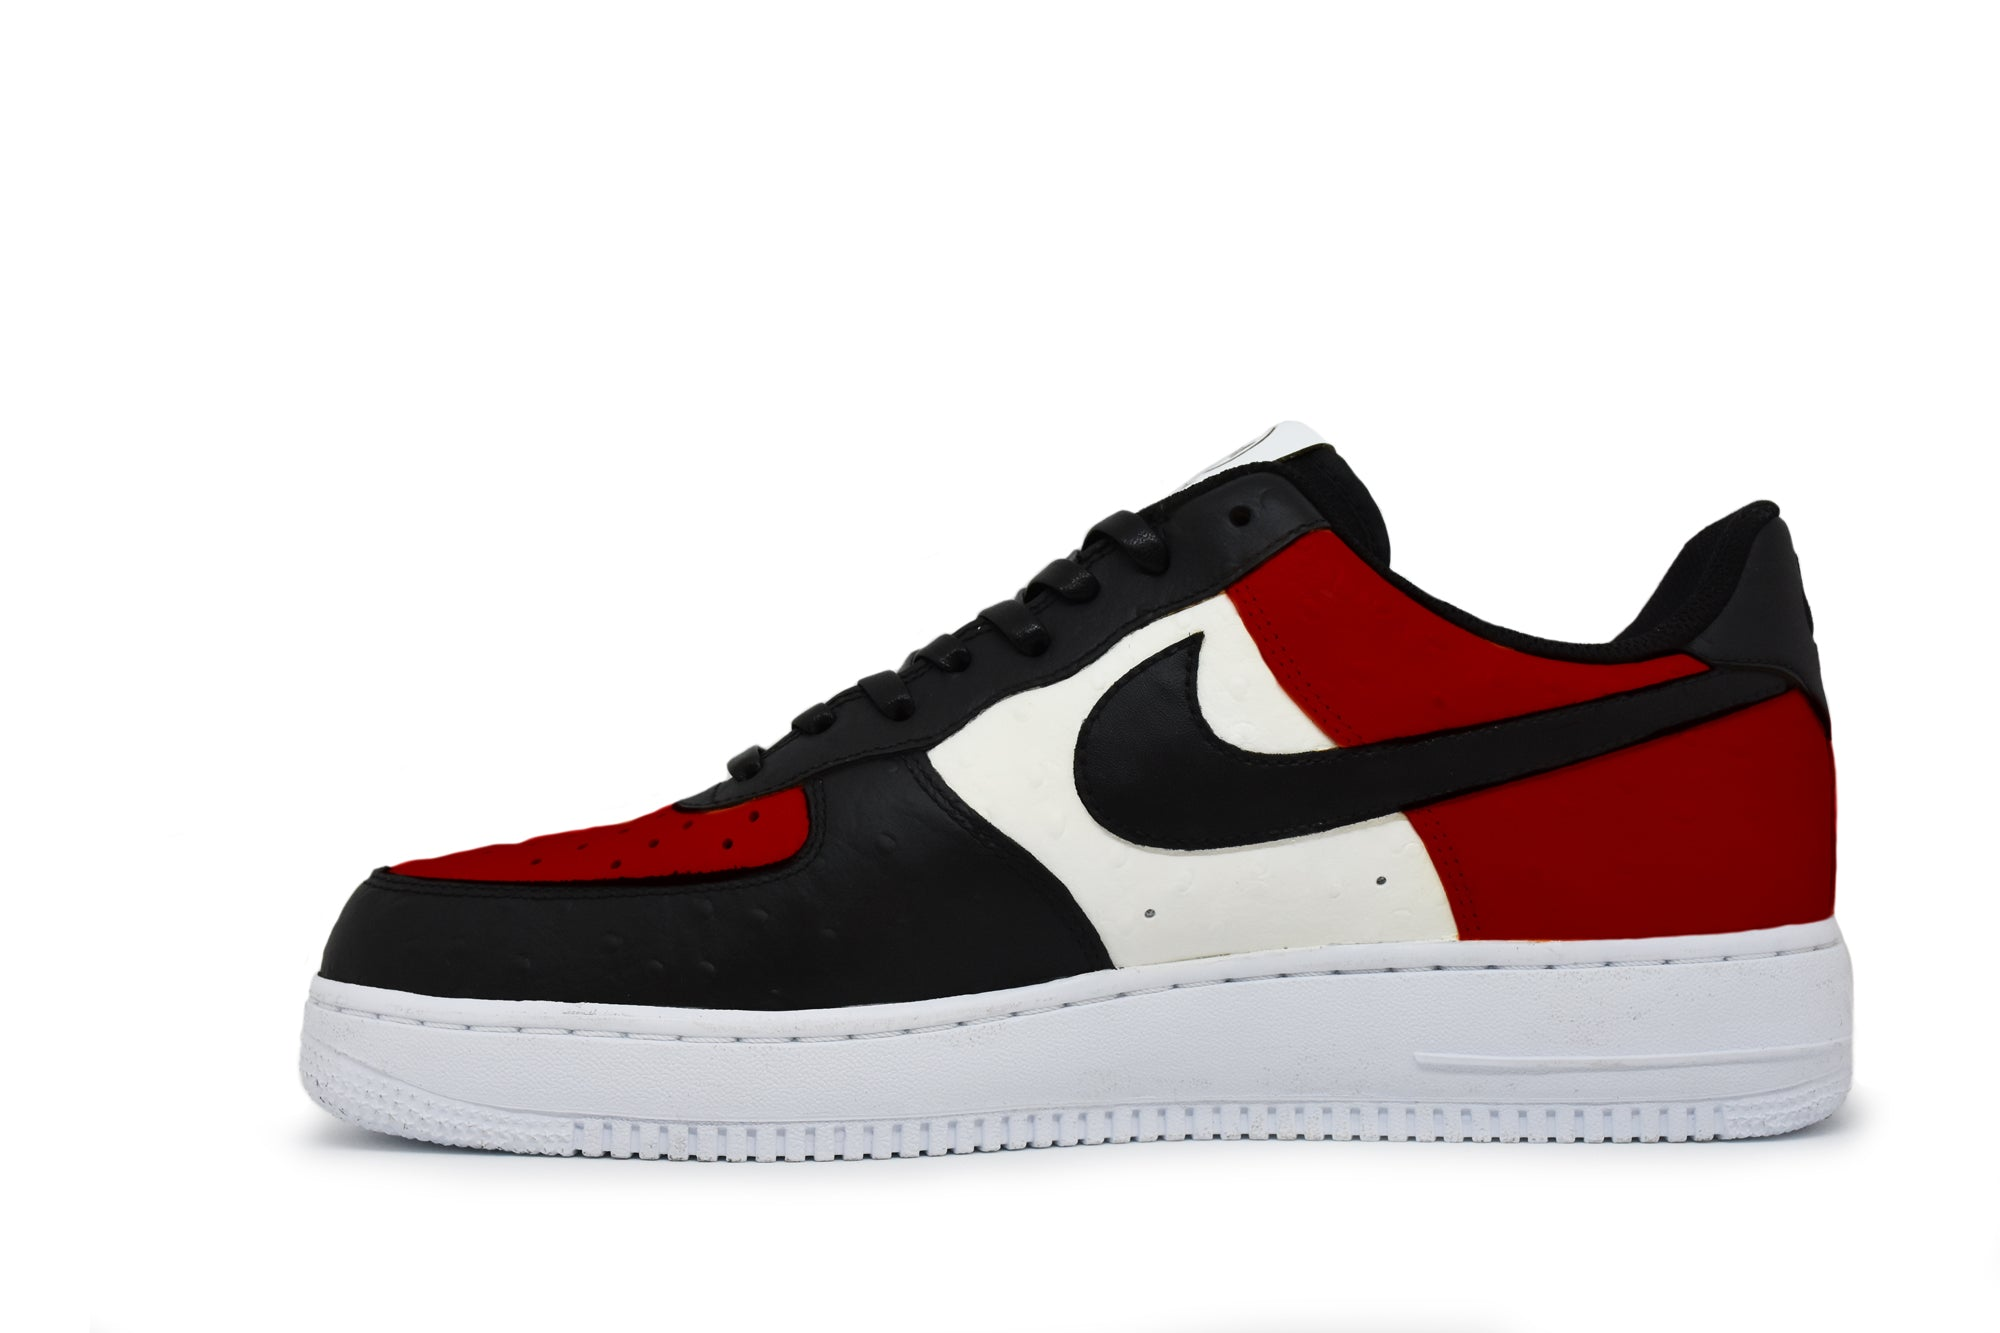 b03a3bd51282 Ostrich Air Force 1 Low